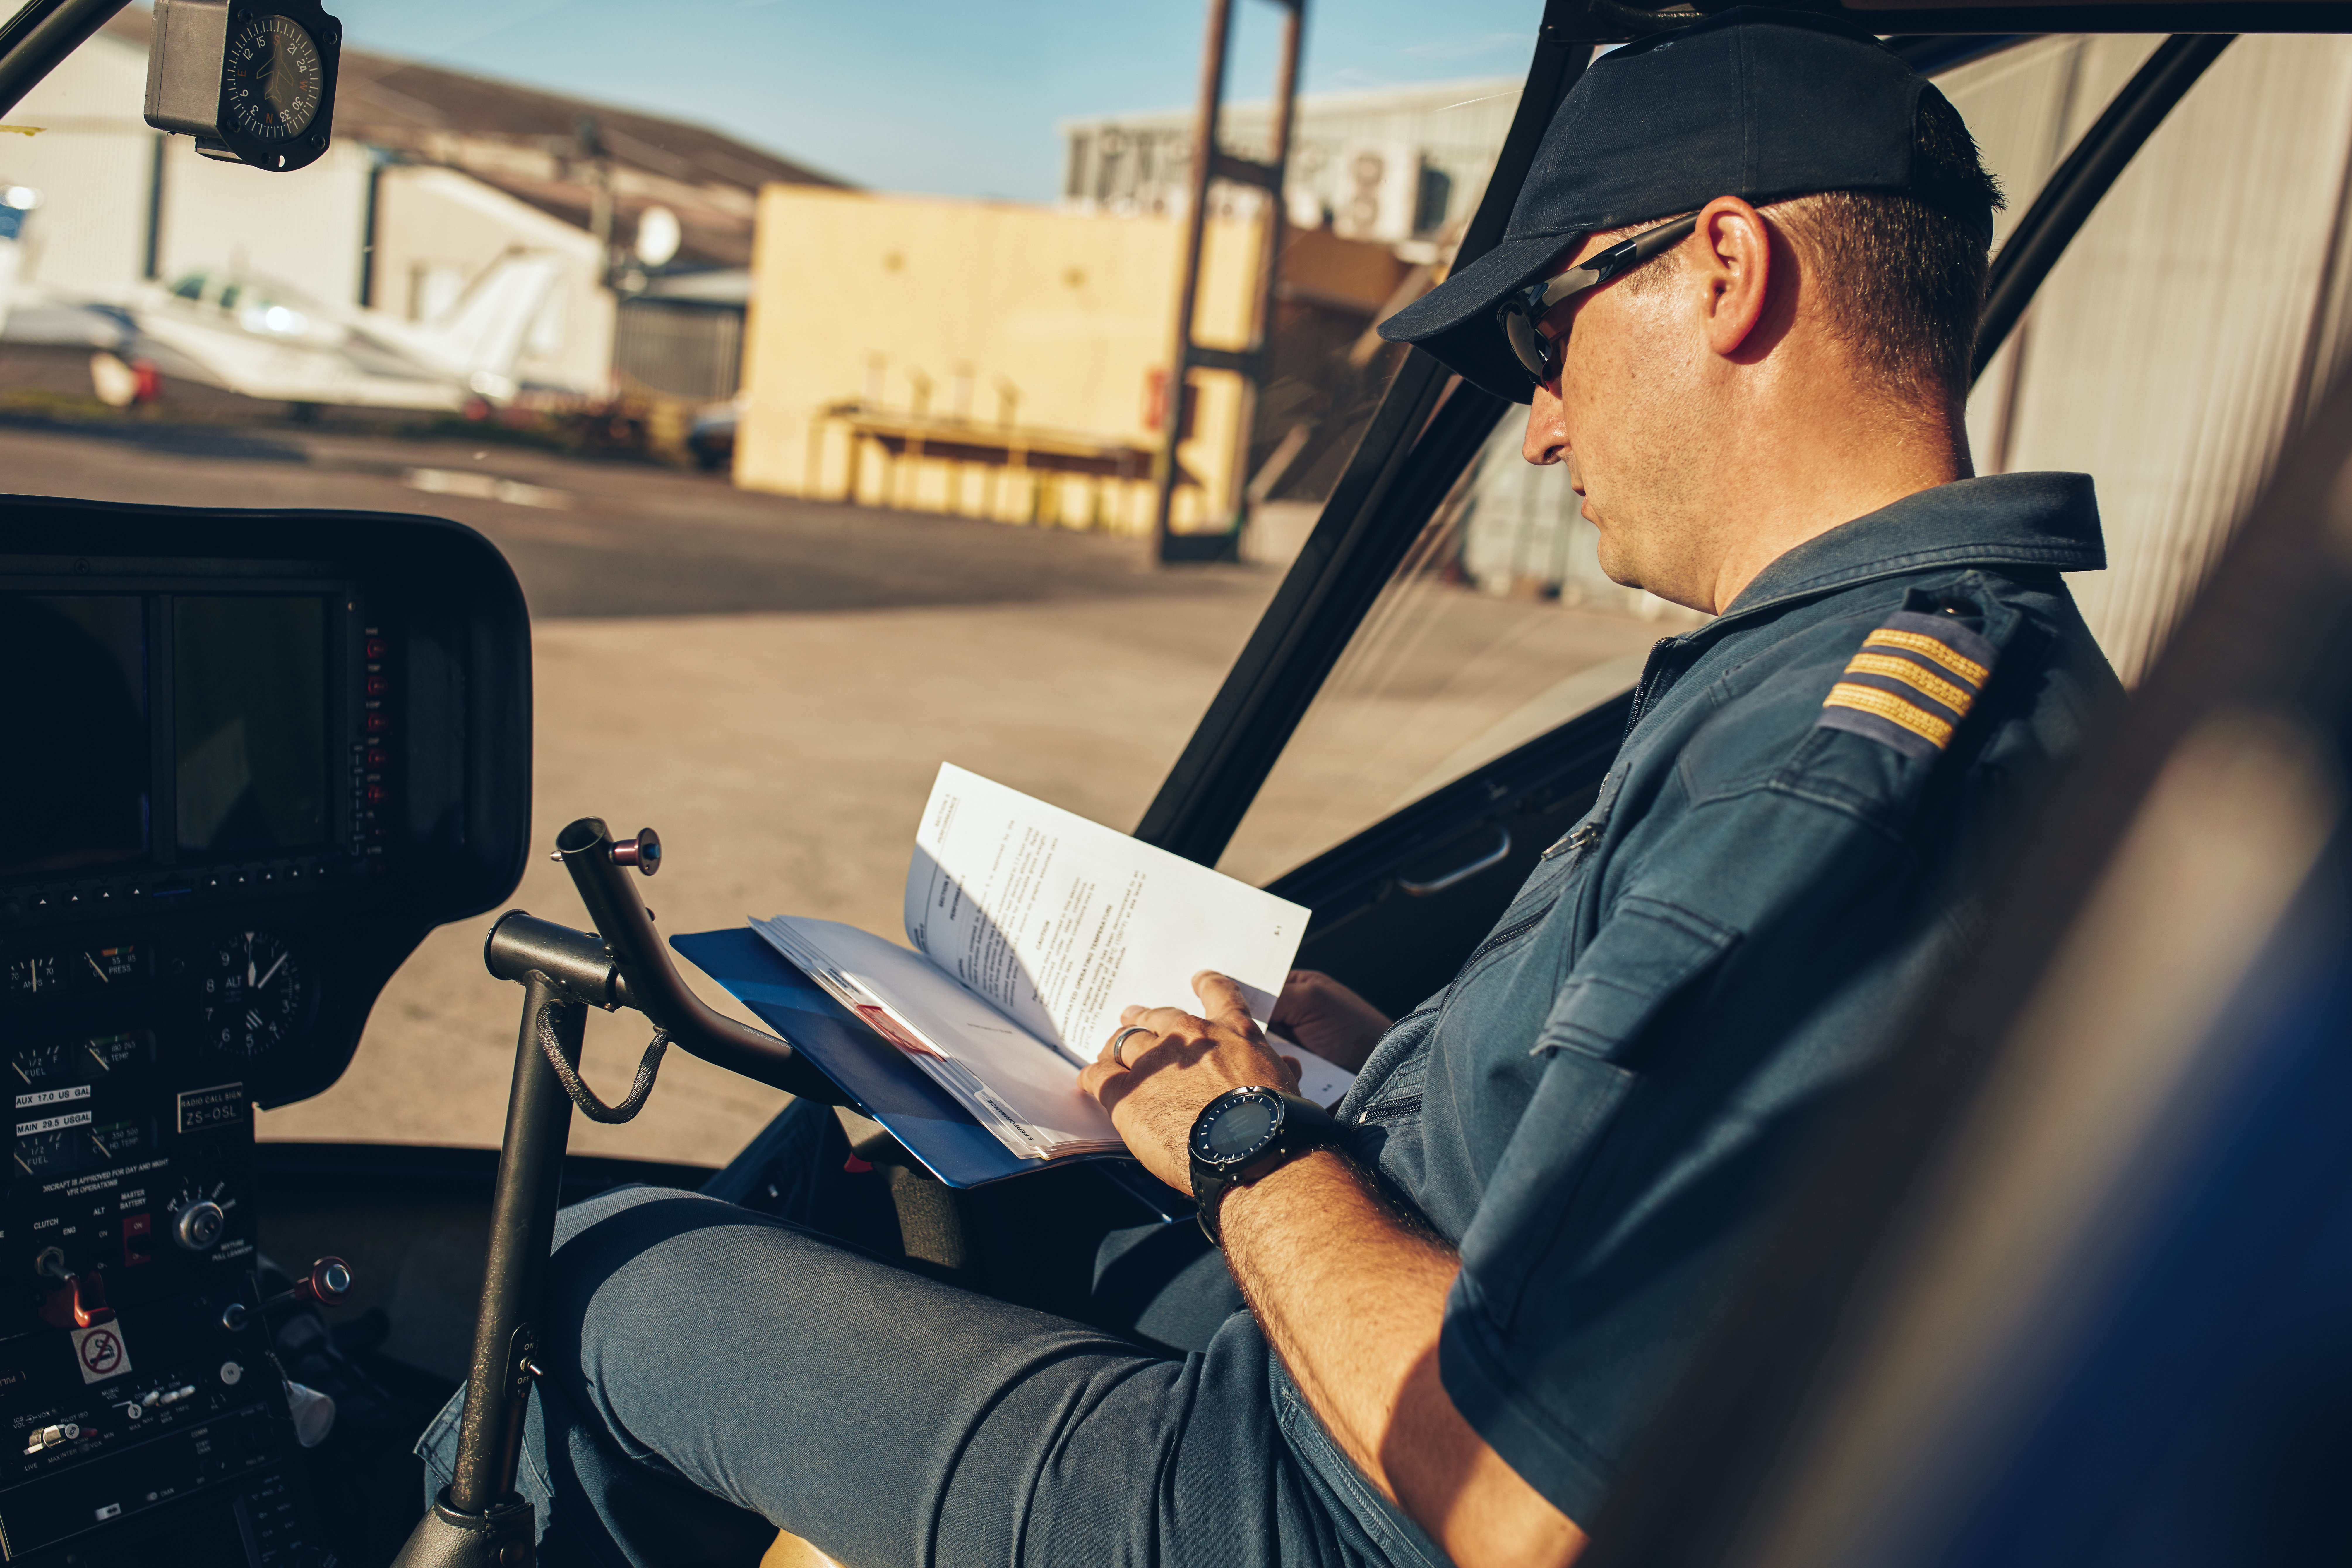 helicopter-pilot-reading-a-manual-book-PLEXH6J